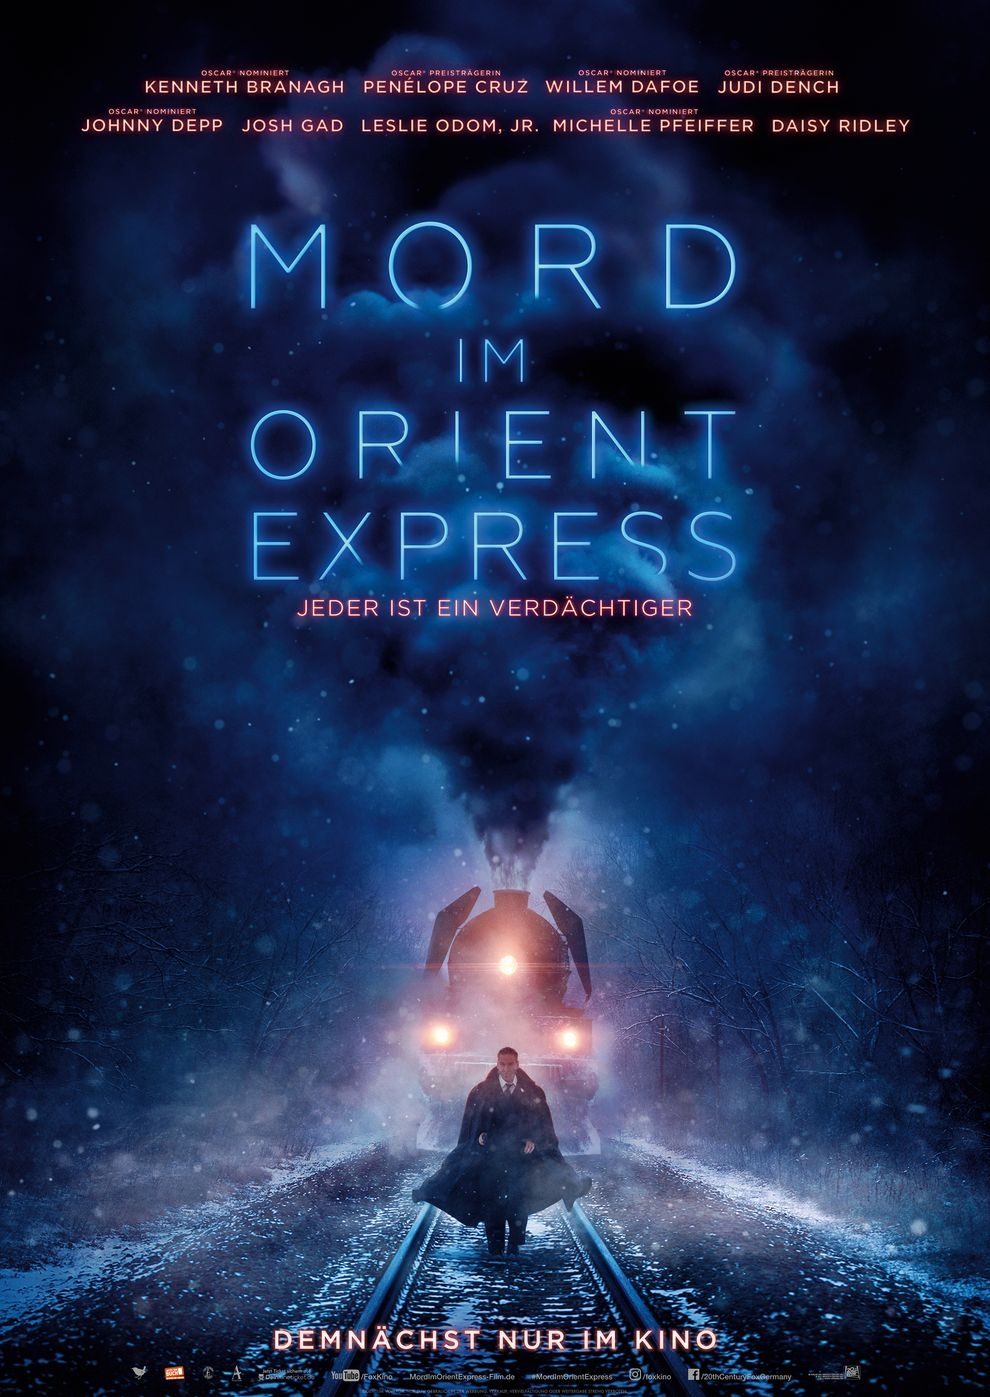 Mord im Orient-Express (Poster)